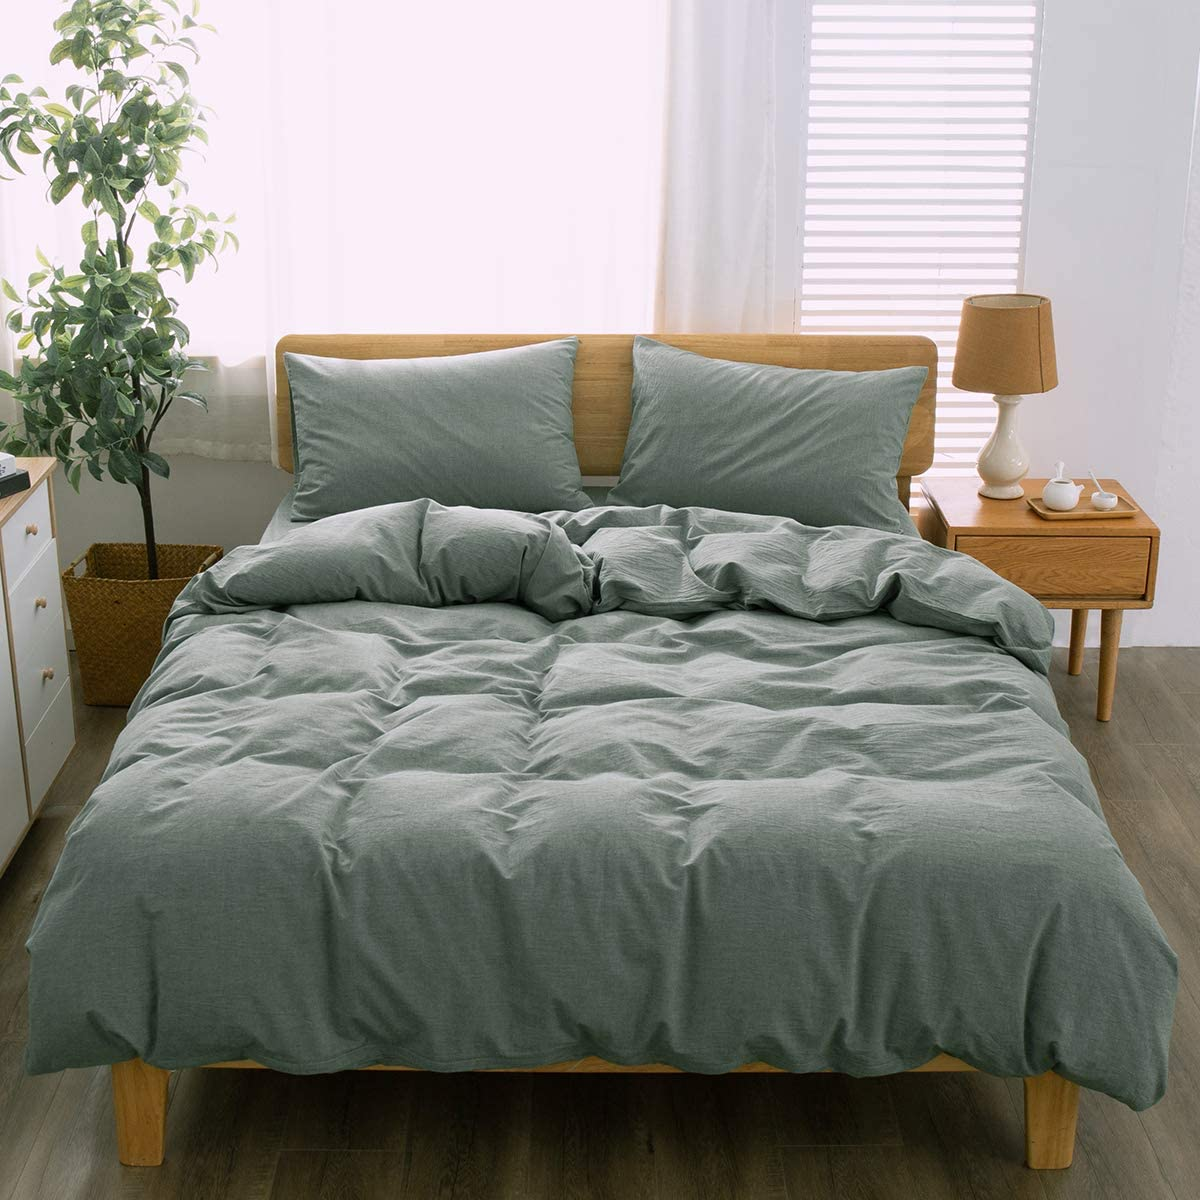 MIAN YI Duvet Cover 3-Piece,100/% Washed Cotton Duvet Cover,Comforter Cover Queen Size,Simple Bedding Style Queen,Dark Gray